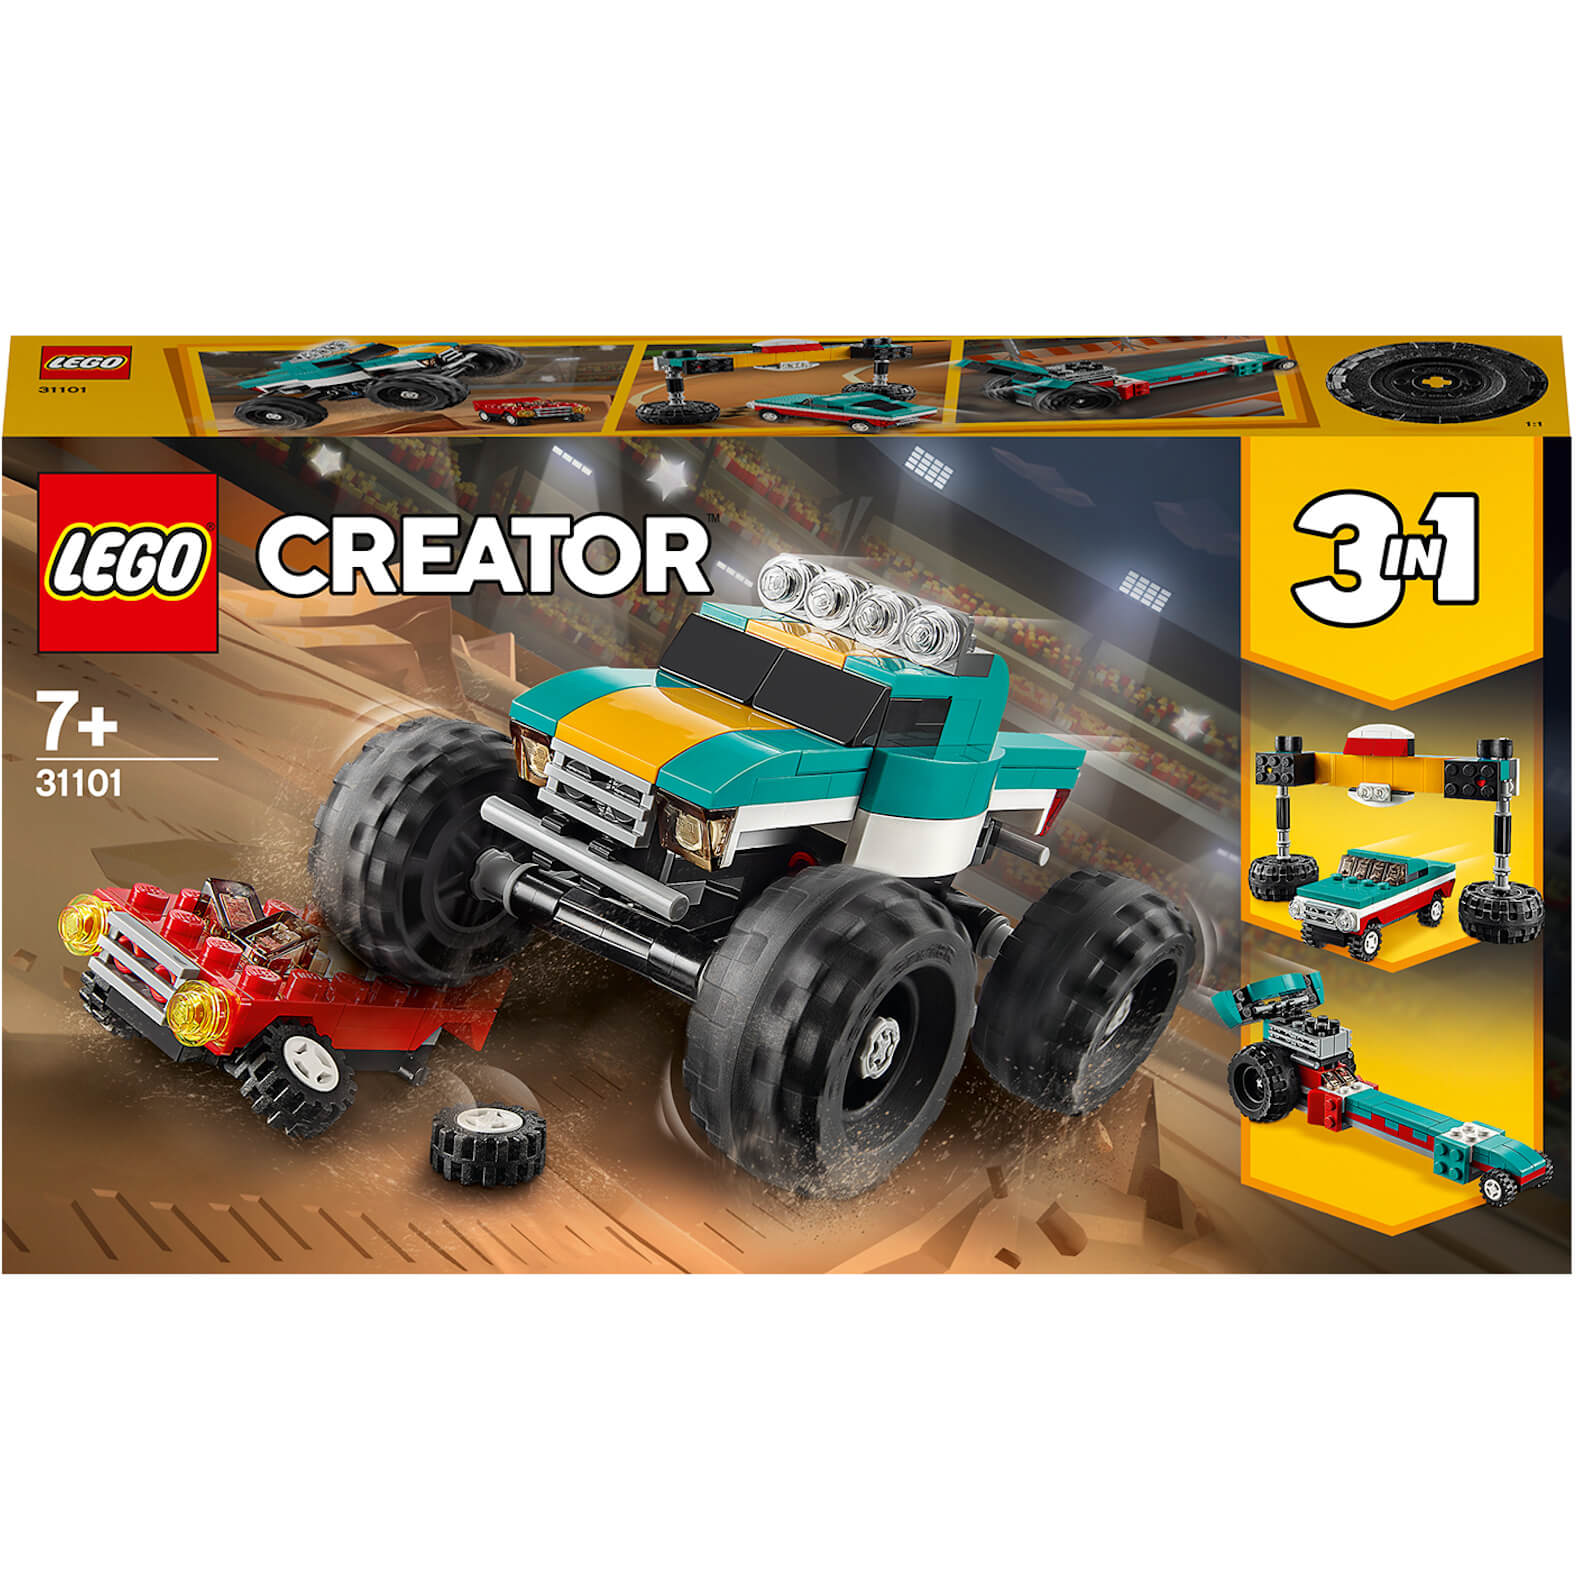 LEGO Creator: 3in1 Monster Truck Demolition Car Toy (31101)